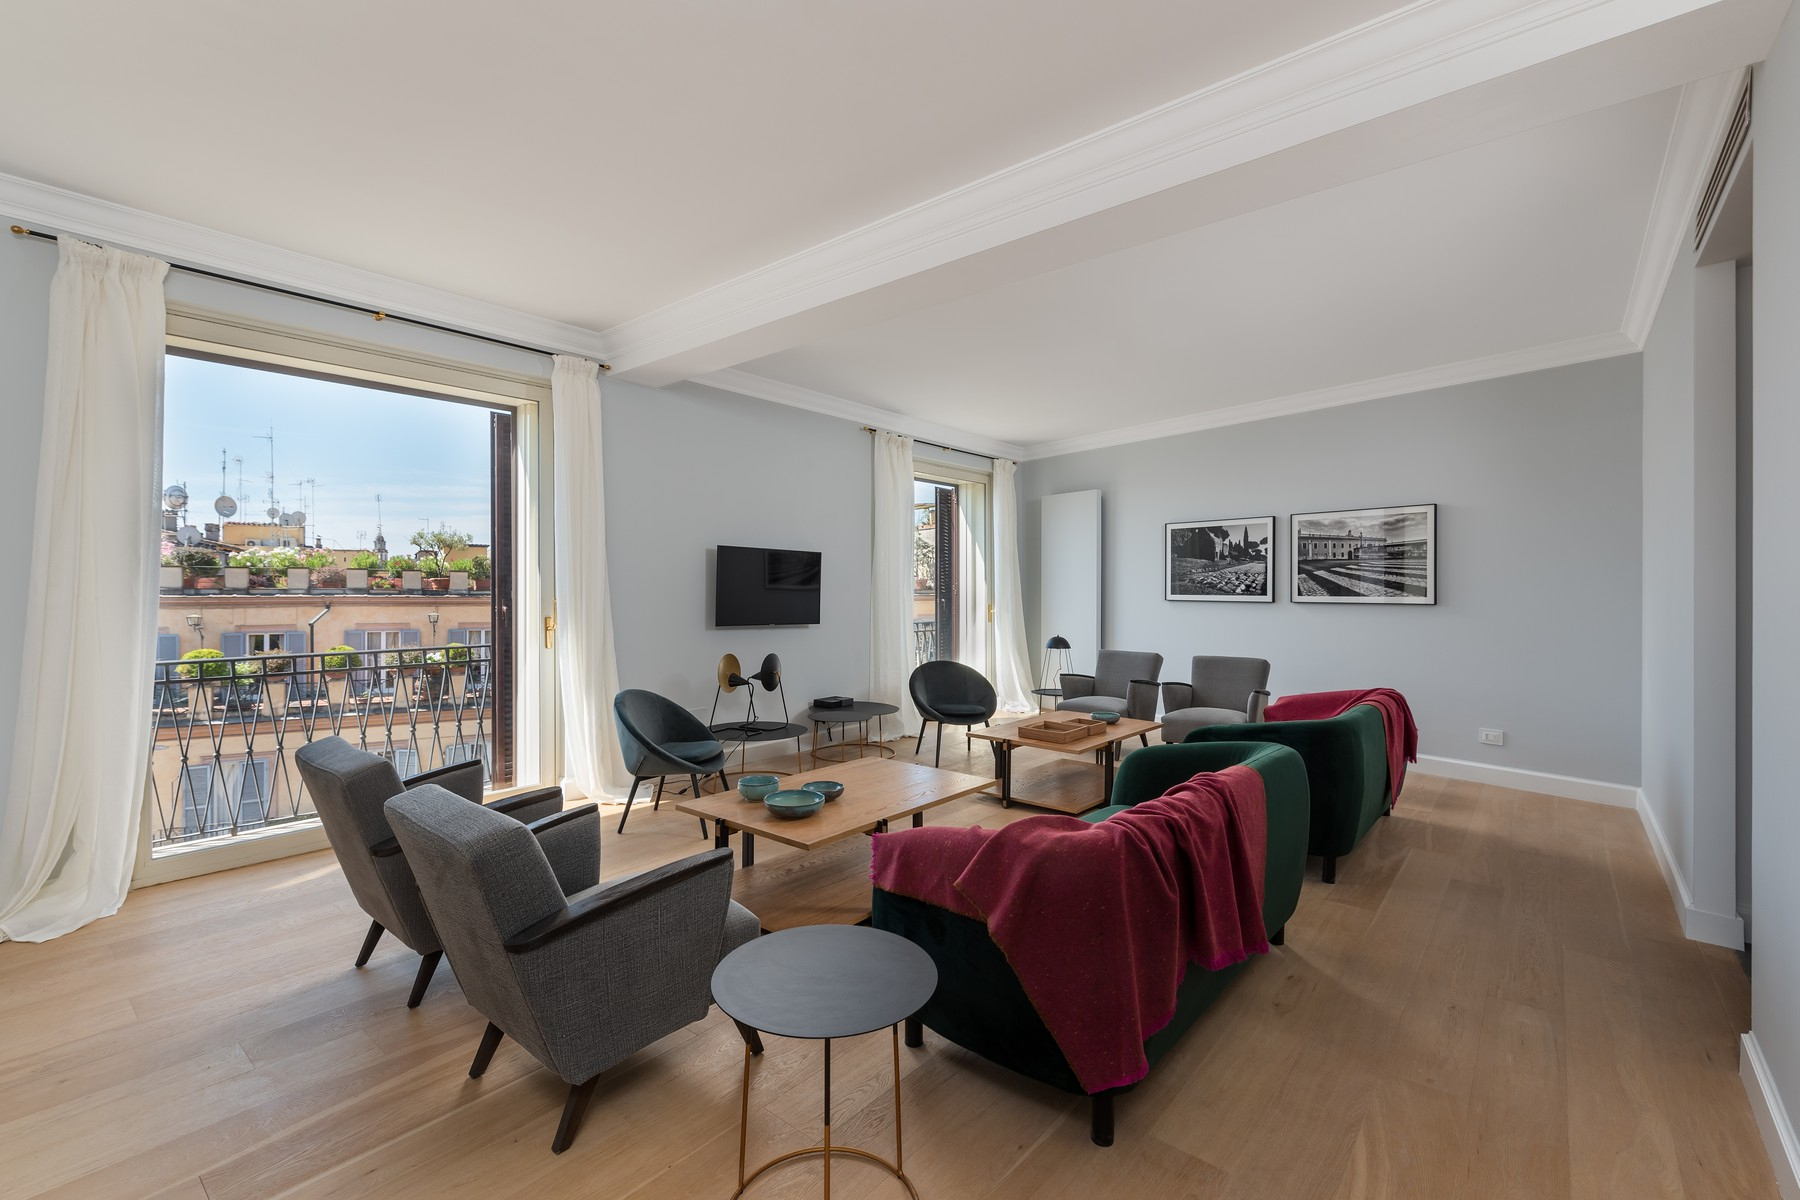 Apartments 为 出租 在 Residential property for Rental in Roma (Italy) 罗马, 罗马 意大利